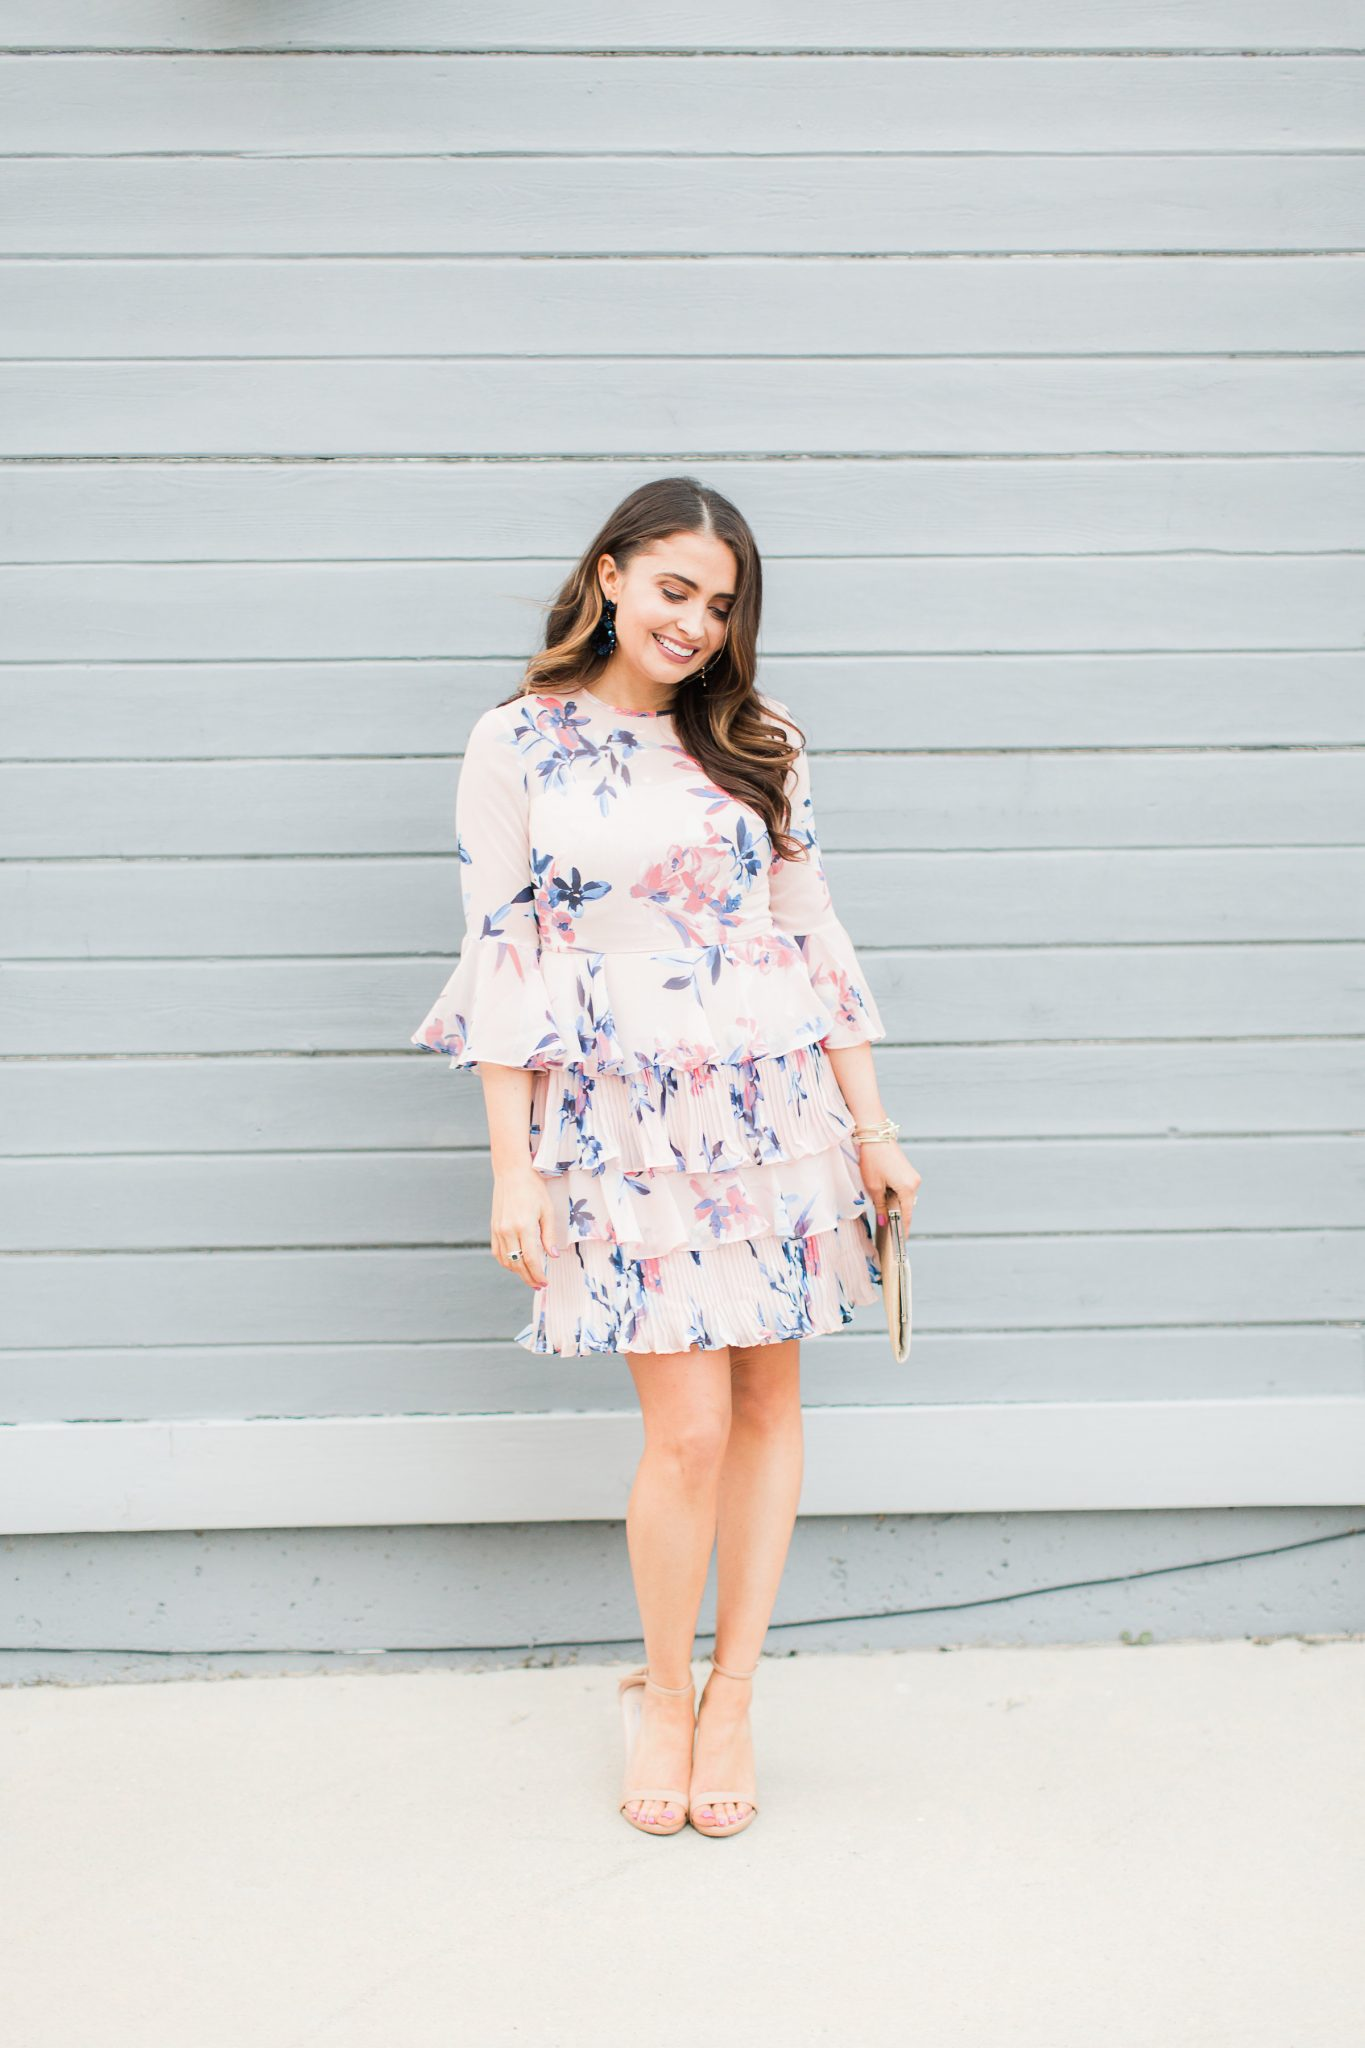 Pink floral ruffle dress - My Favorite Cute Easter Dresses by popular Orange County fashion blogger Maxie Elise